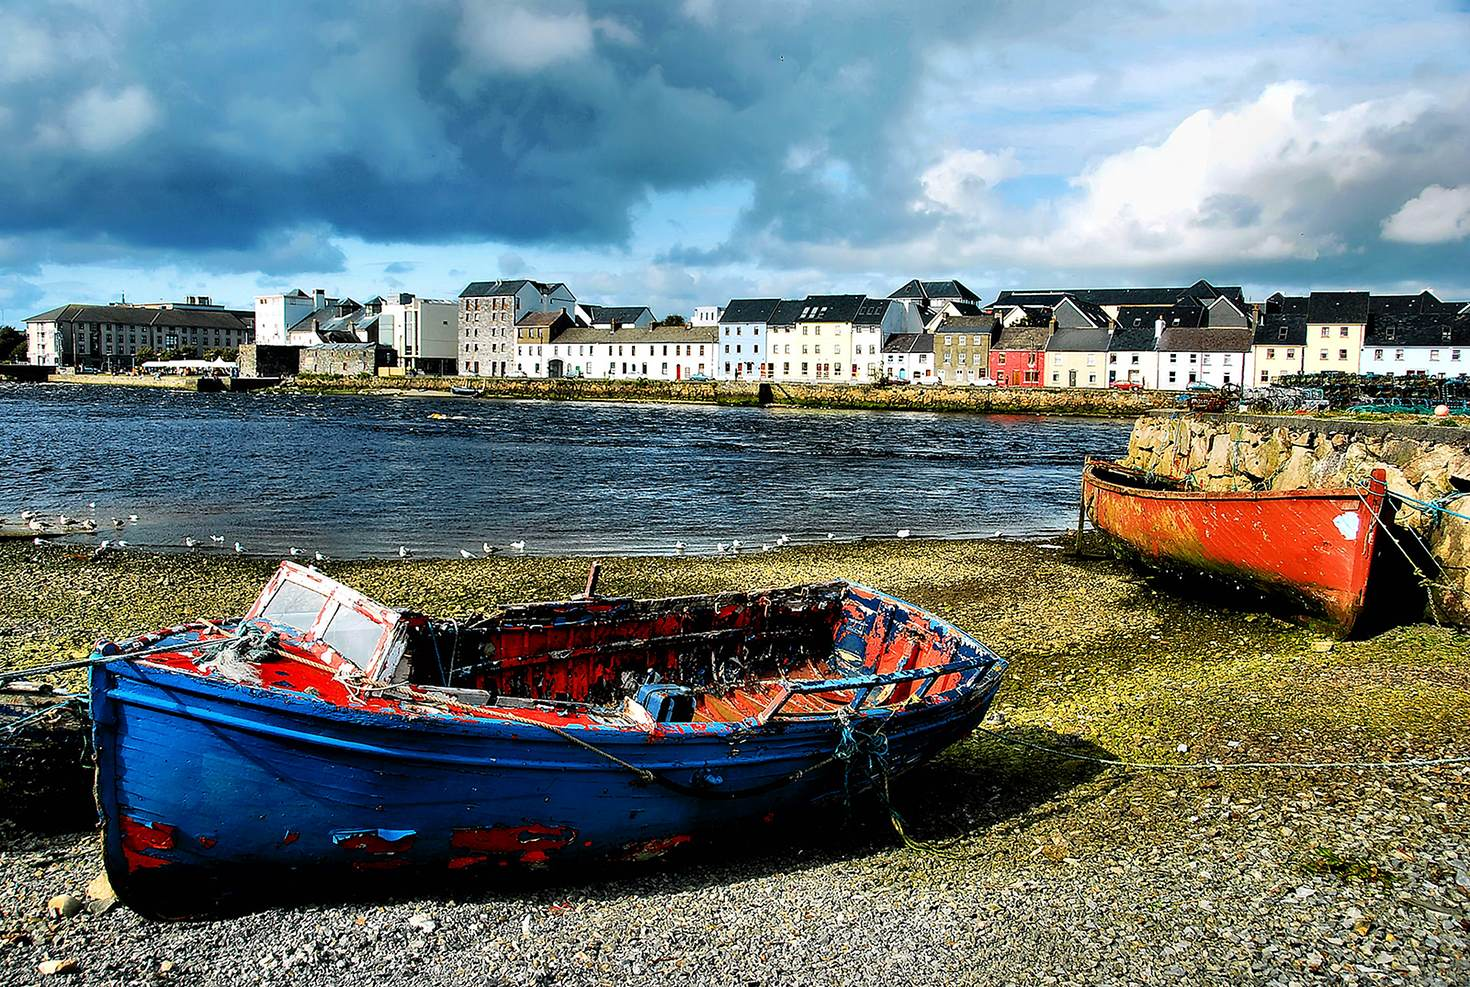 Fishing boats at the Claddagh Basin in Galway